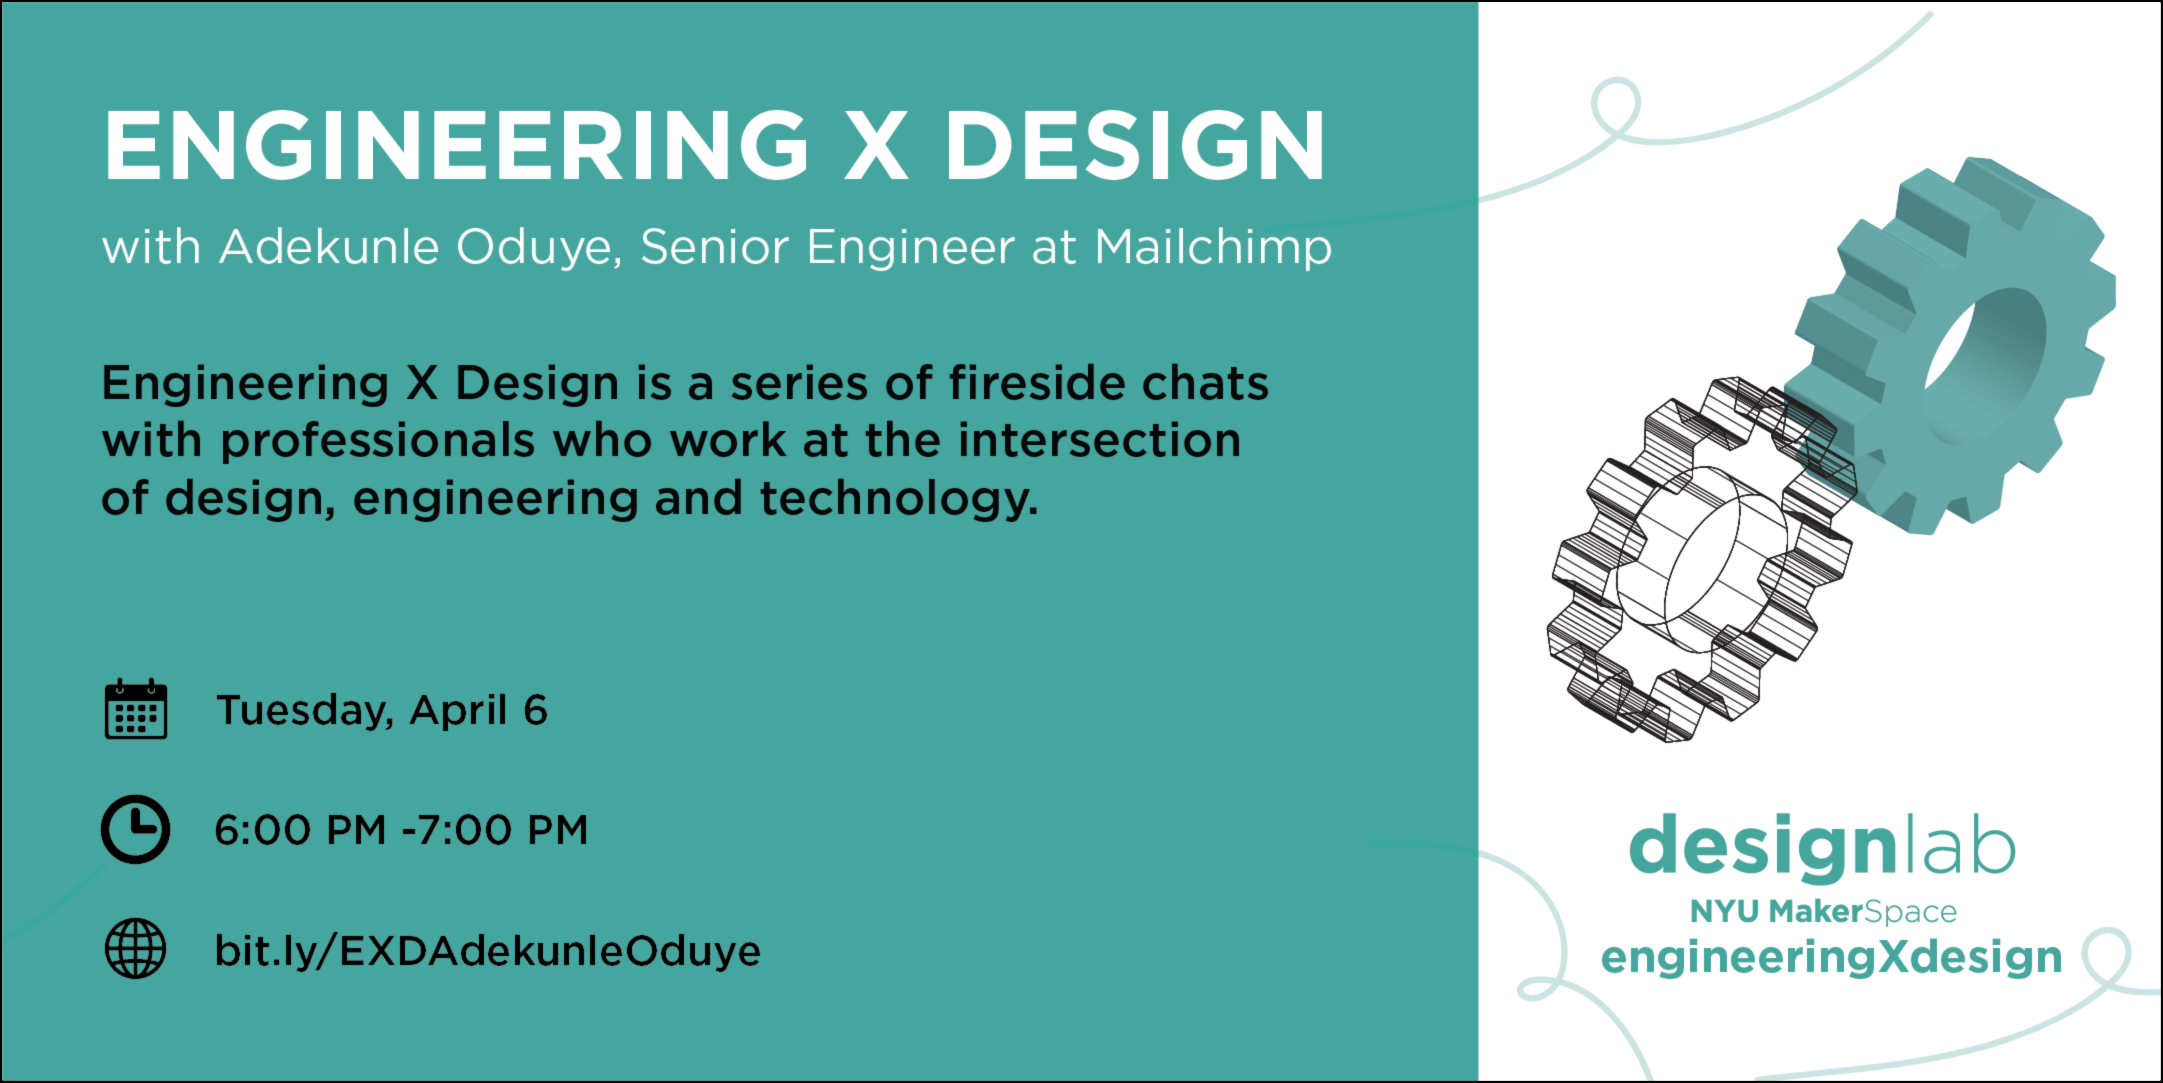 Engineering X Design with Adekunle Oduye Flyer